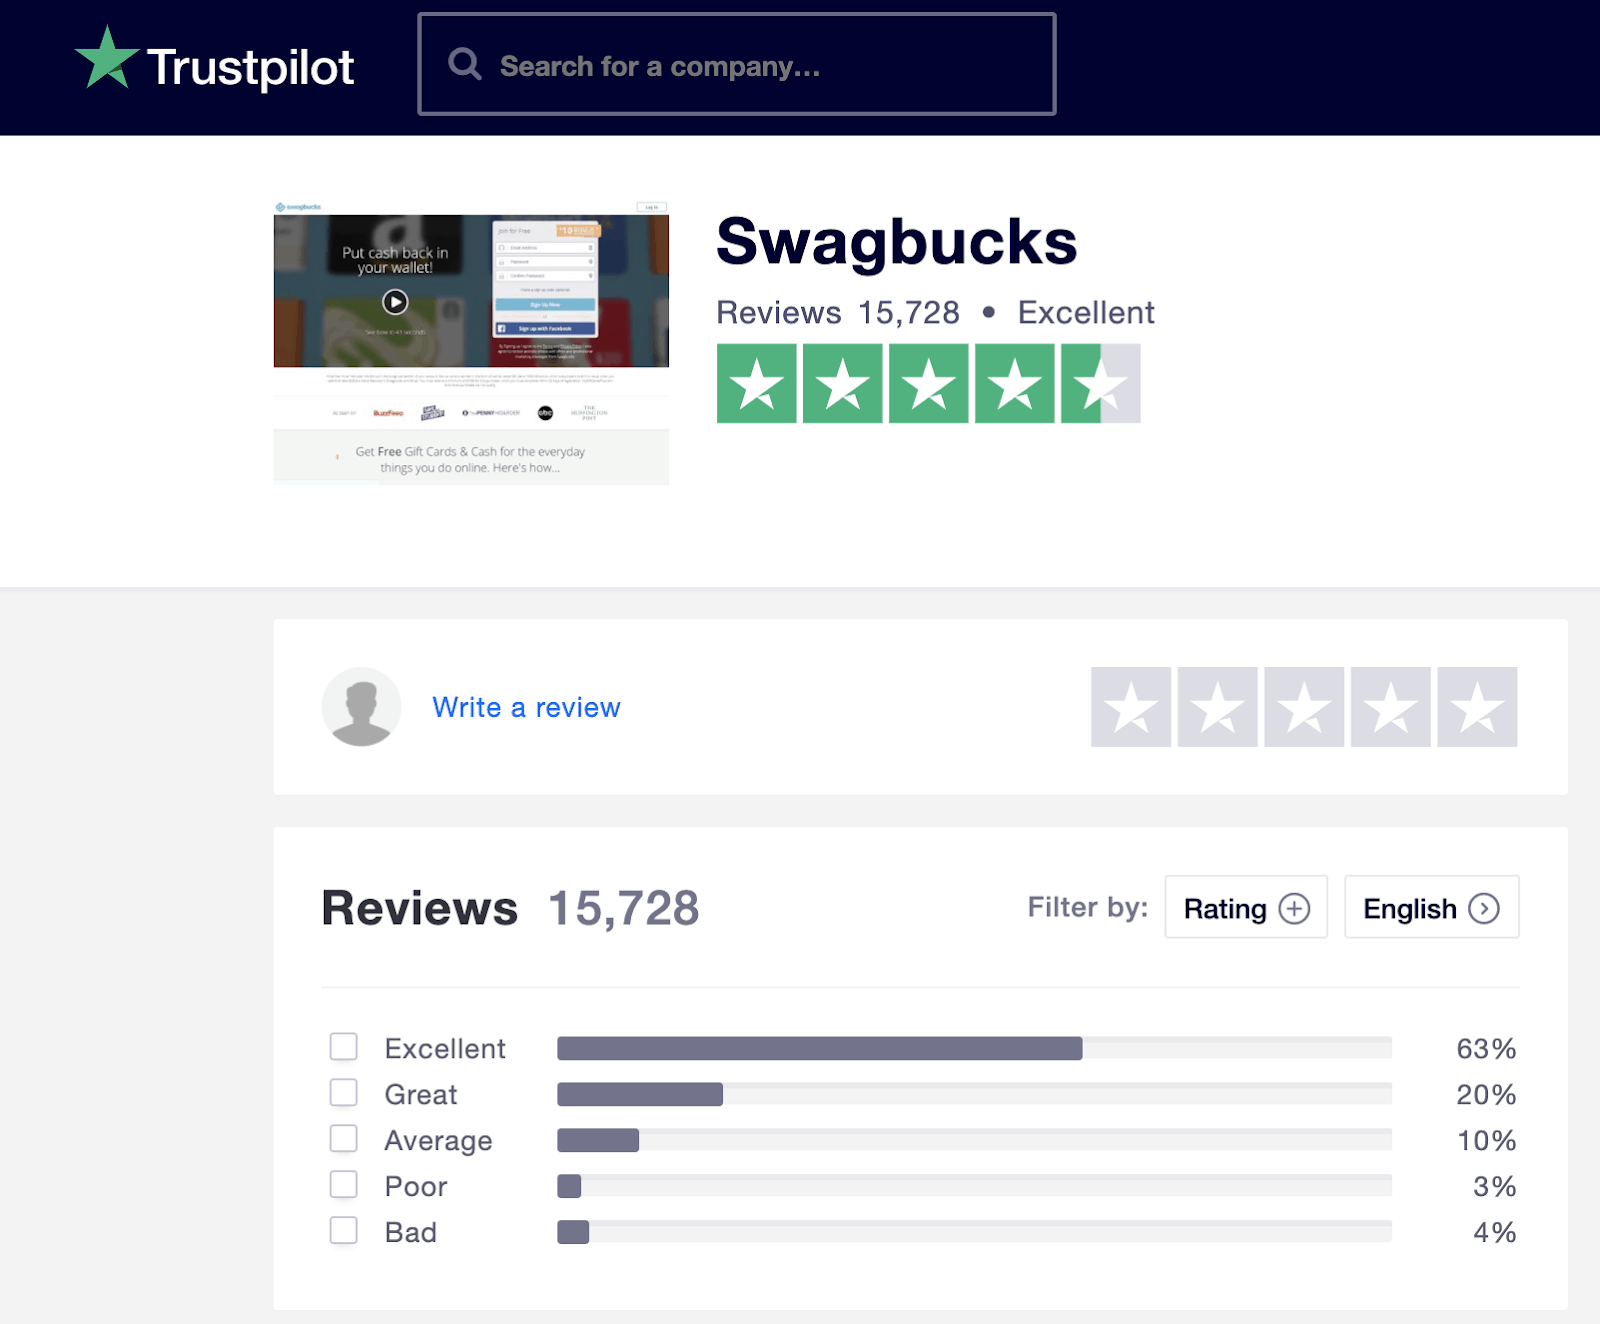 Swagbucks Trustpilot Rating